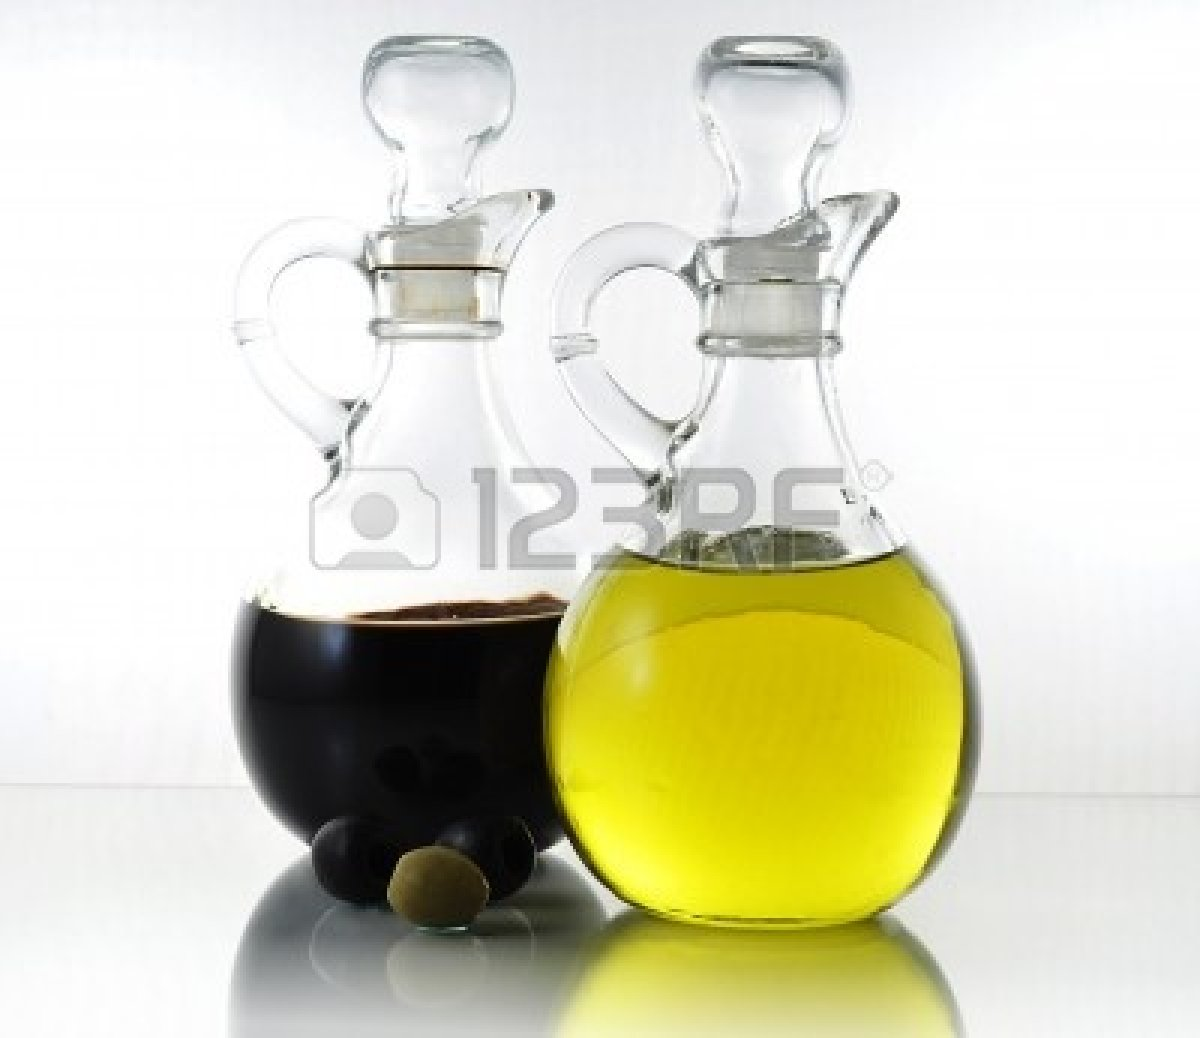 Vinegar: Vinegar is a wonderful cleaning agent that works in almost all areas. When wondering how to clean makeup brushes at home the easiest thing that comes to mind is vinegar. In a bowl of hot water mix a tablespoon of vinegar. Allow the brushes to stand in it for around 15-20 minutes. Bits of makeup will soon dissolve in the solution. Rinse in hot water and then in cold water. Allow the brushes to dry.